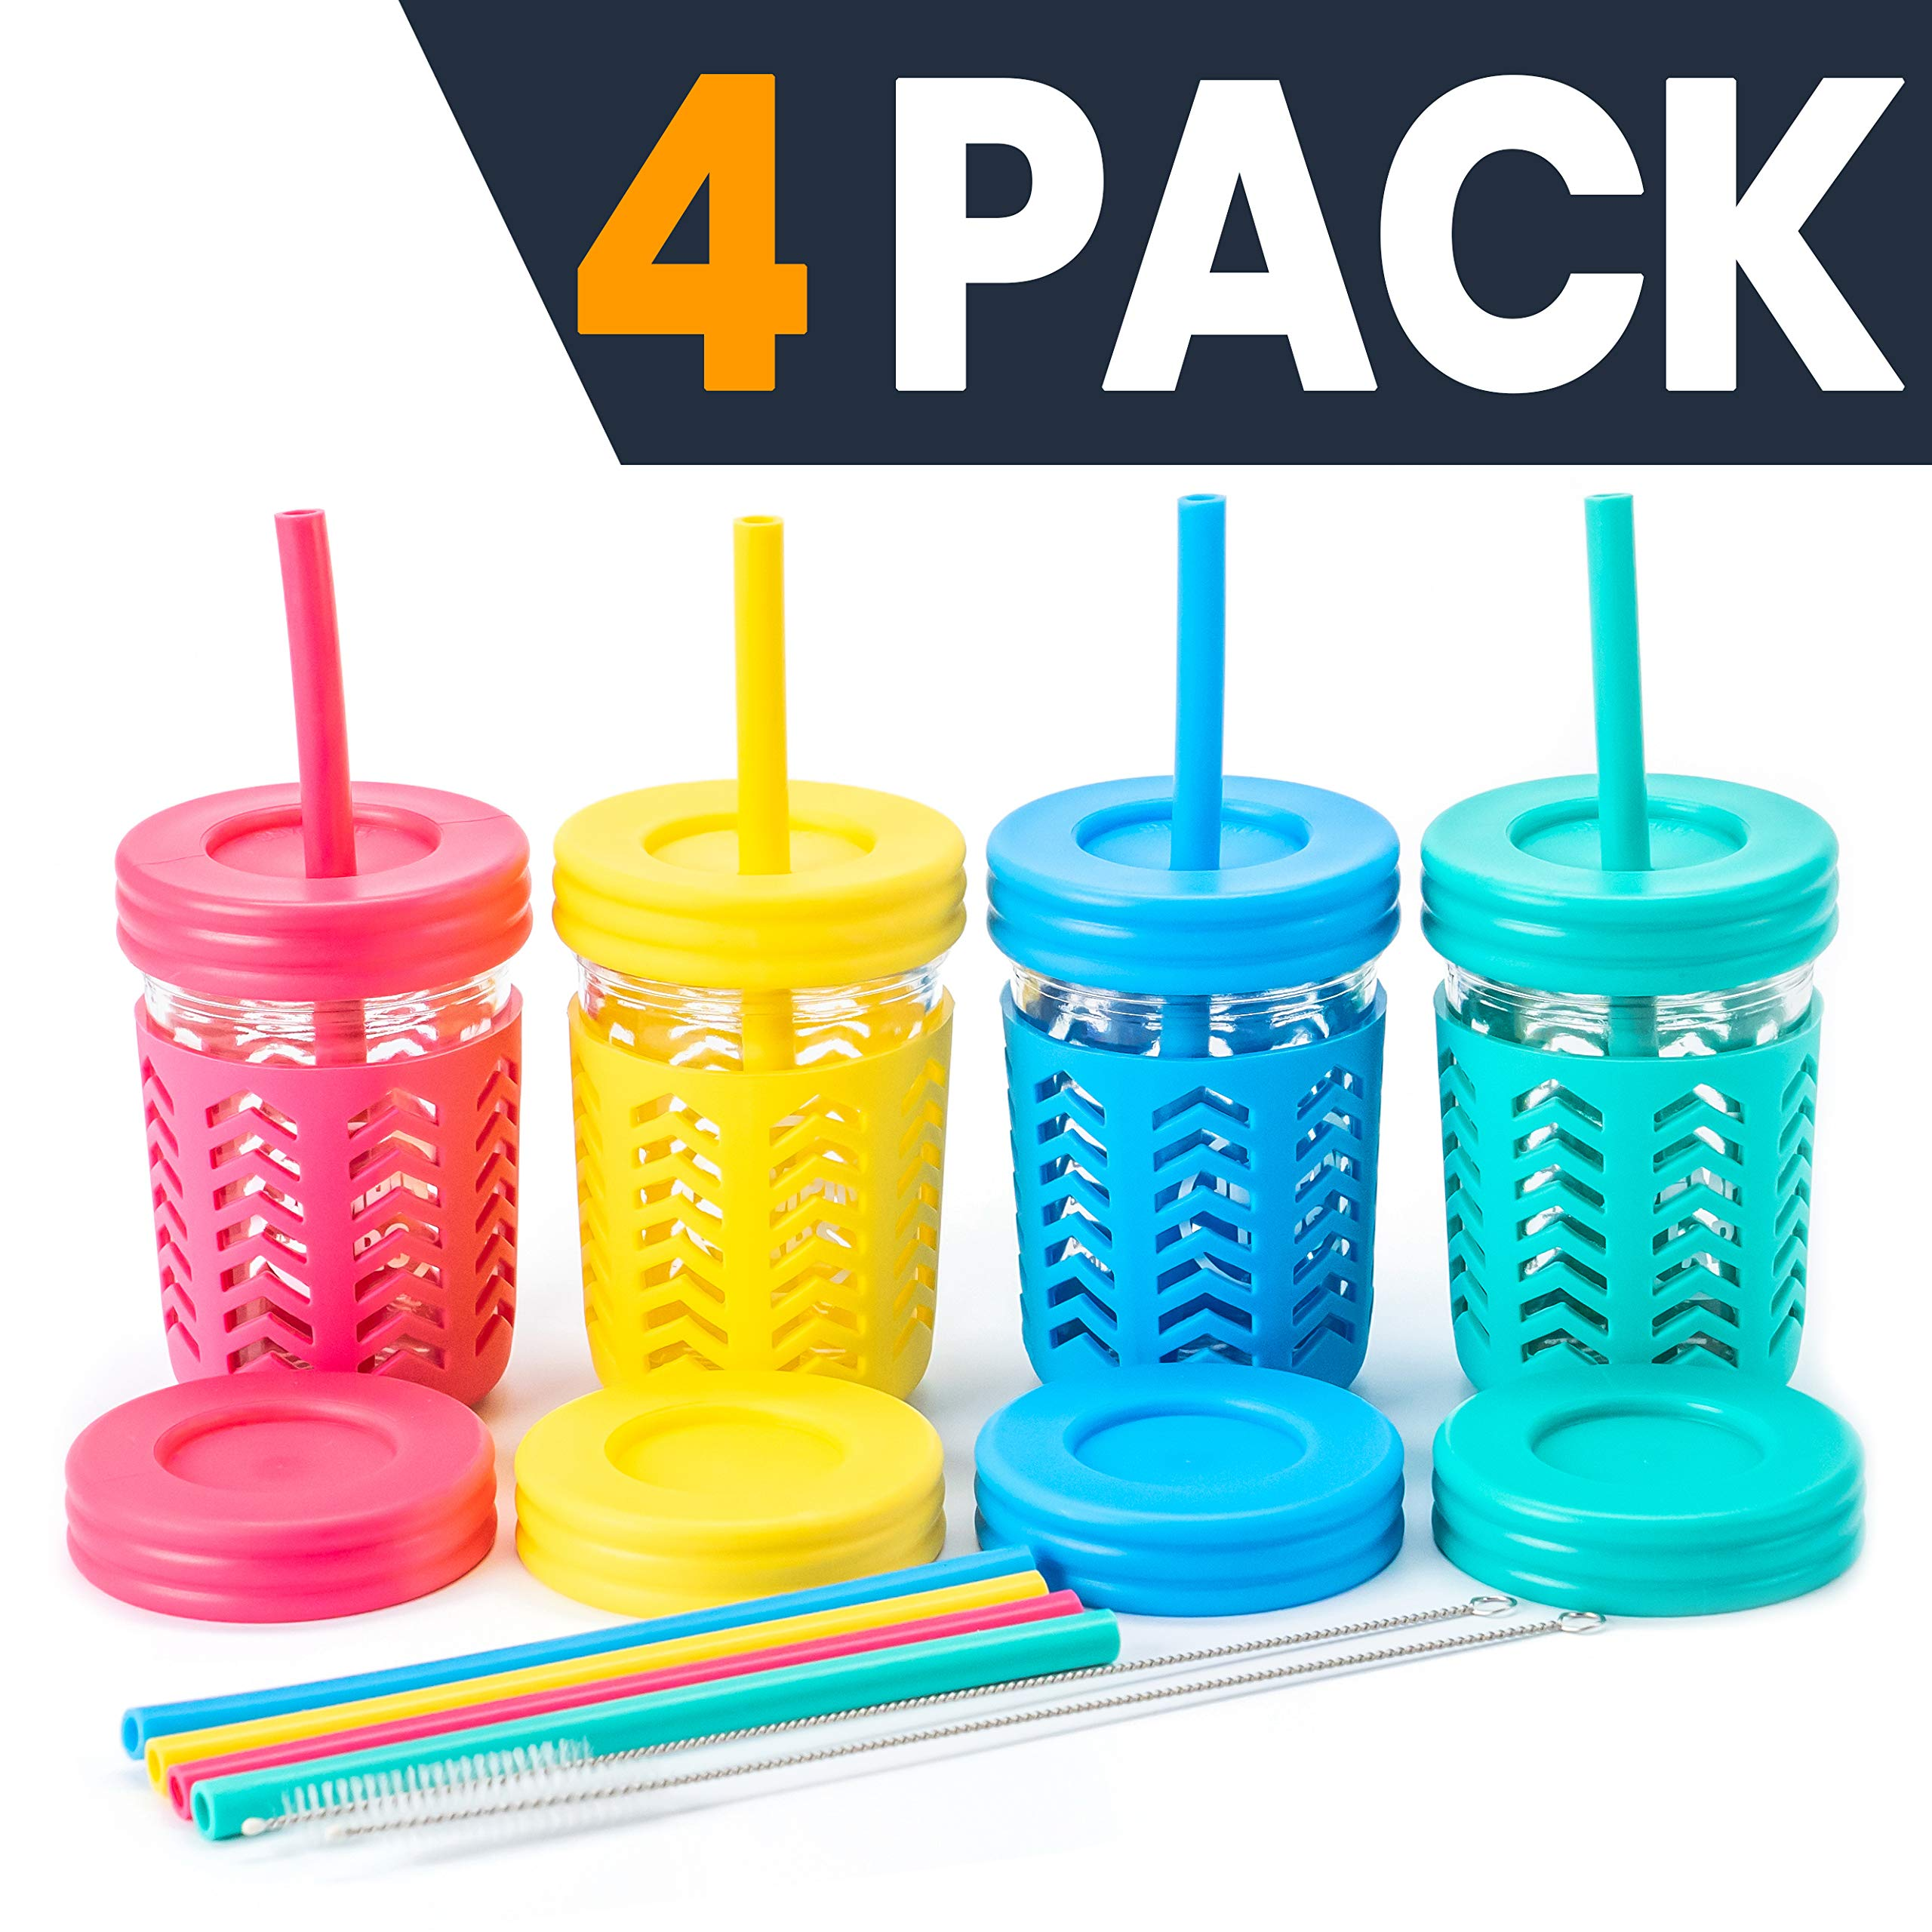 Toddler Cups/Kids Cups by JumpinJars! 4 Kids Mason Jar Cups with Straw (x8), 8x Lids, 4x Jackets, 2x Straw Cleaners! Spill Proof Cups For Kids - Kids Tumbler with Straw - 8oz Kid Drinking Glass by JumpinJars